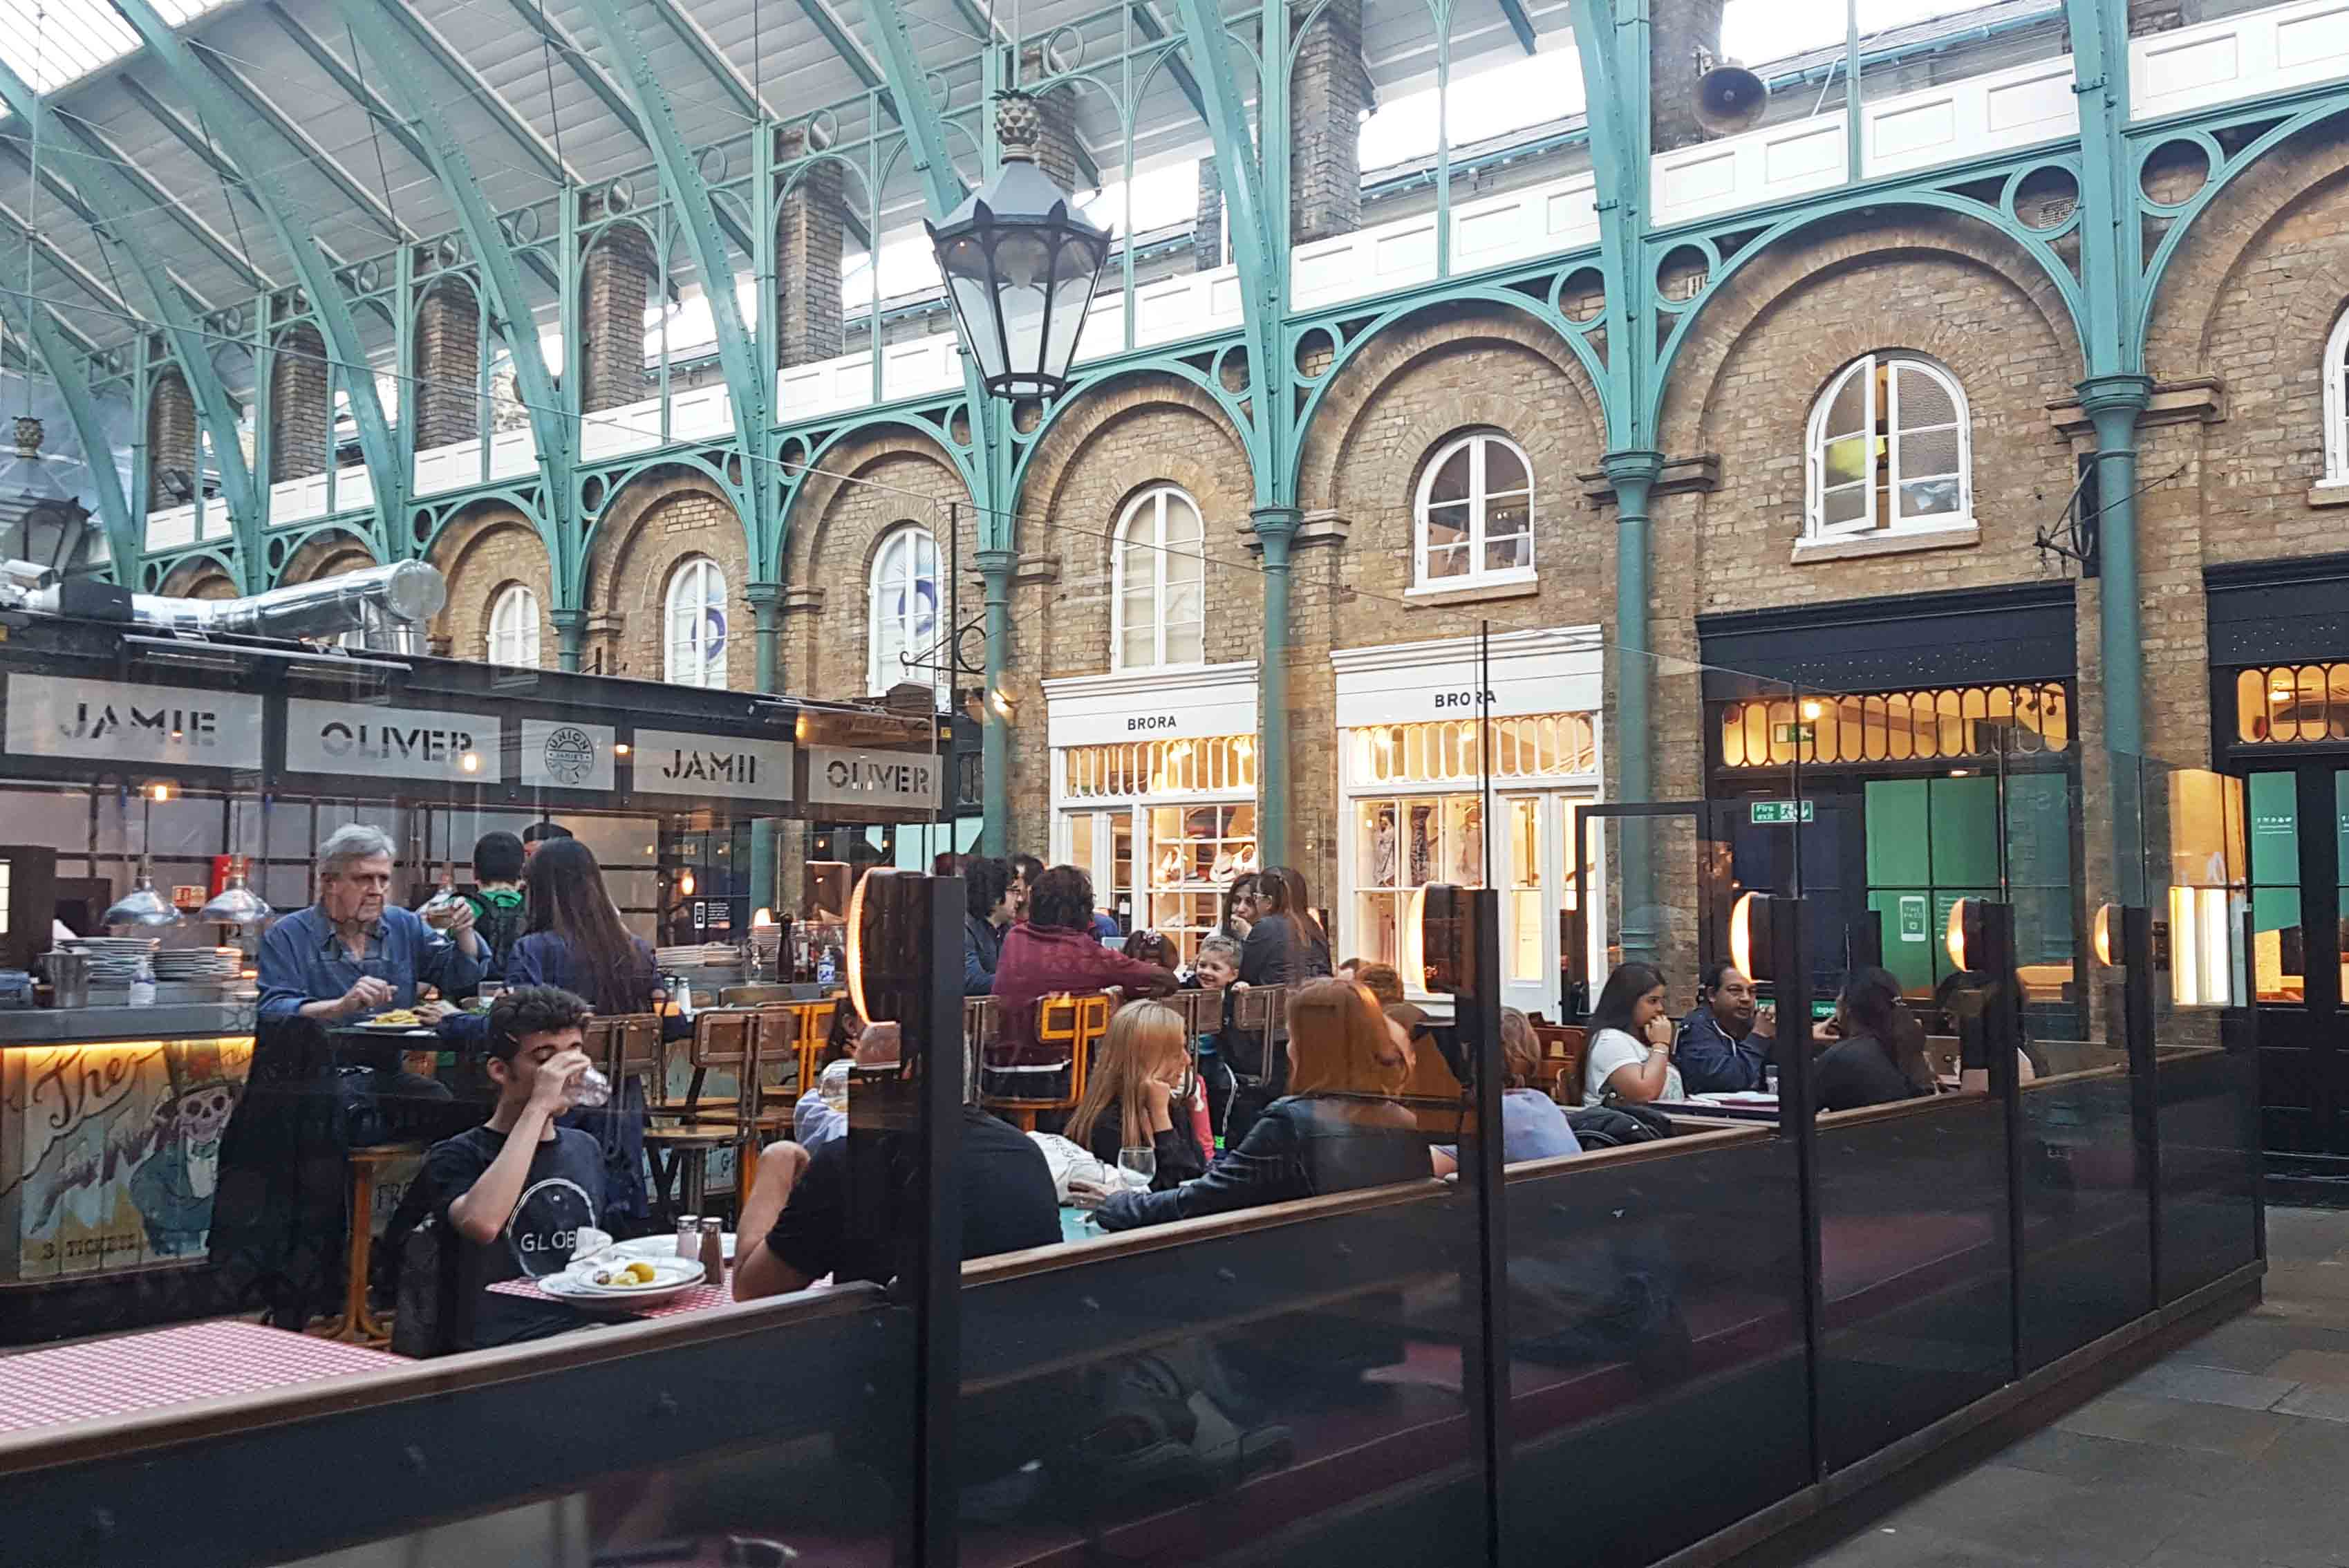 Restaurante do Jamie Oliver no Covent Garden, Londres